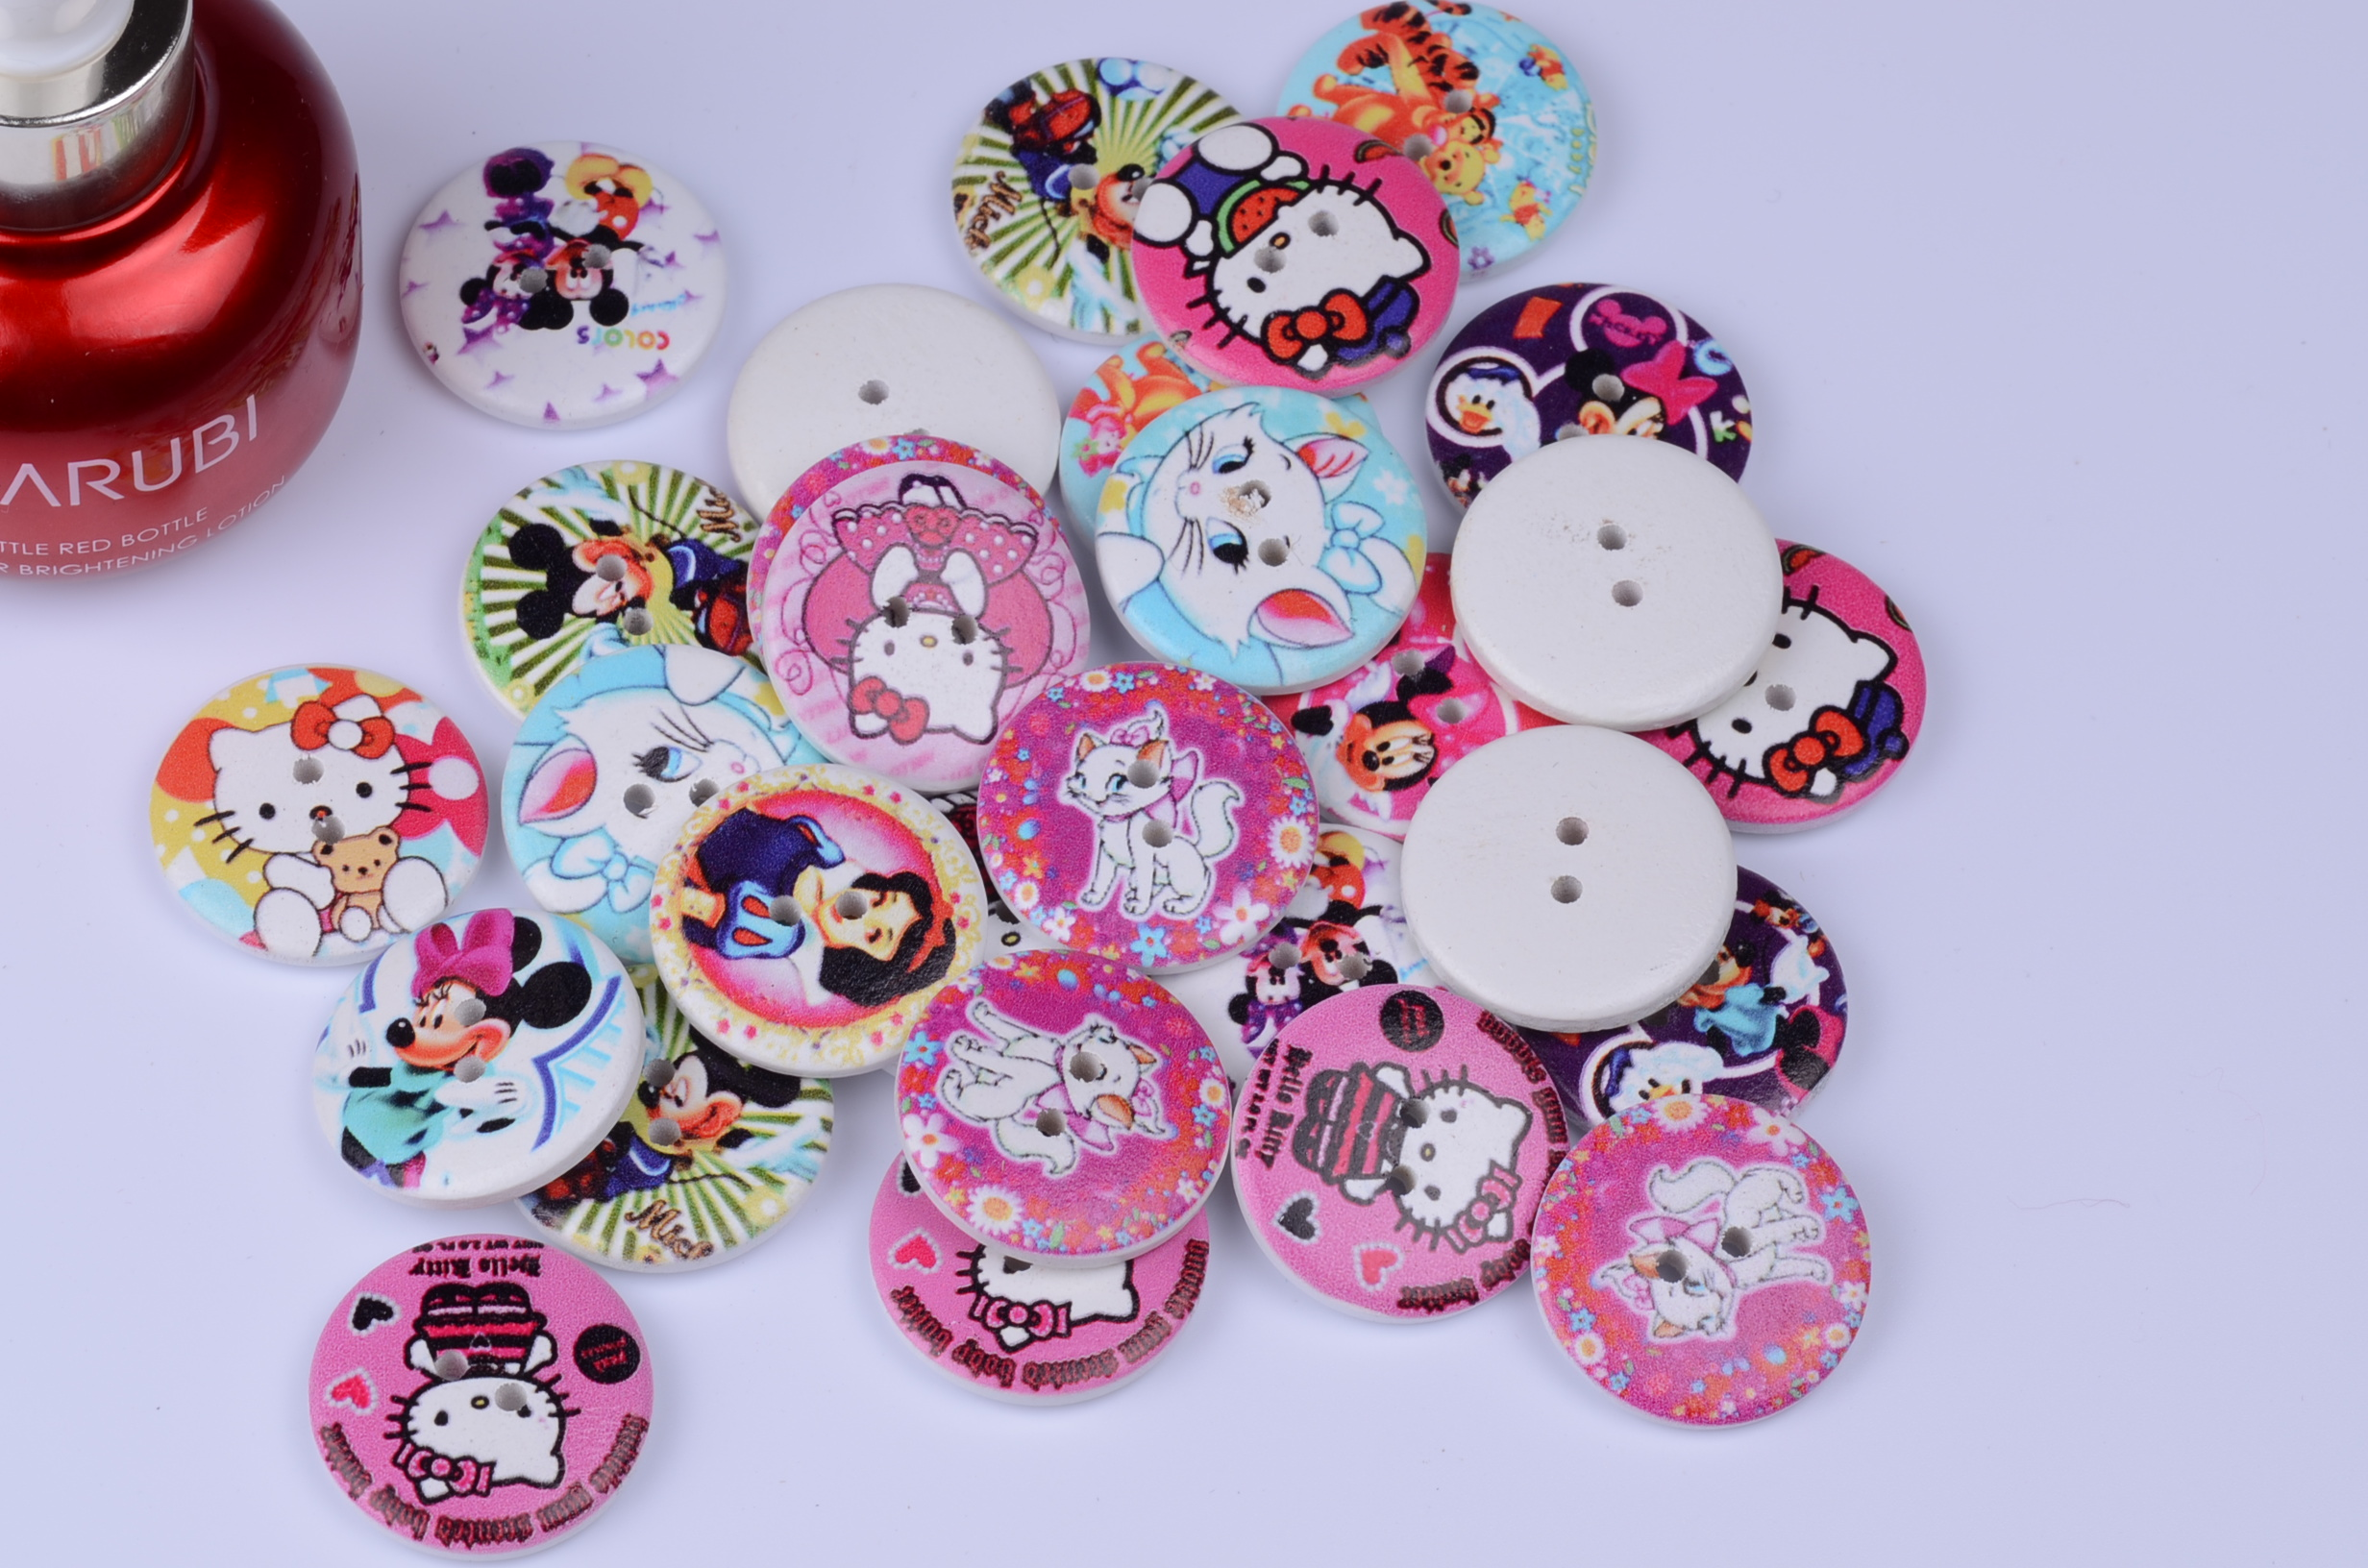 2015NEW 50PCS Painted wooden button 25mm round Children baby buttons combination Kids Clothing accessories sewing supplies(China (Mainland))